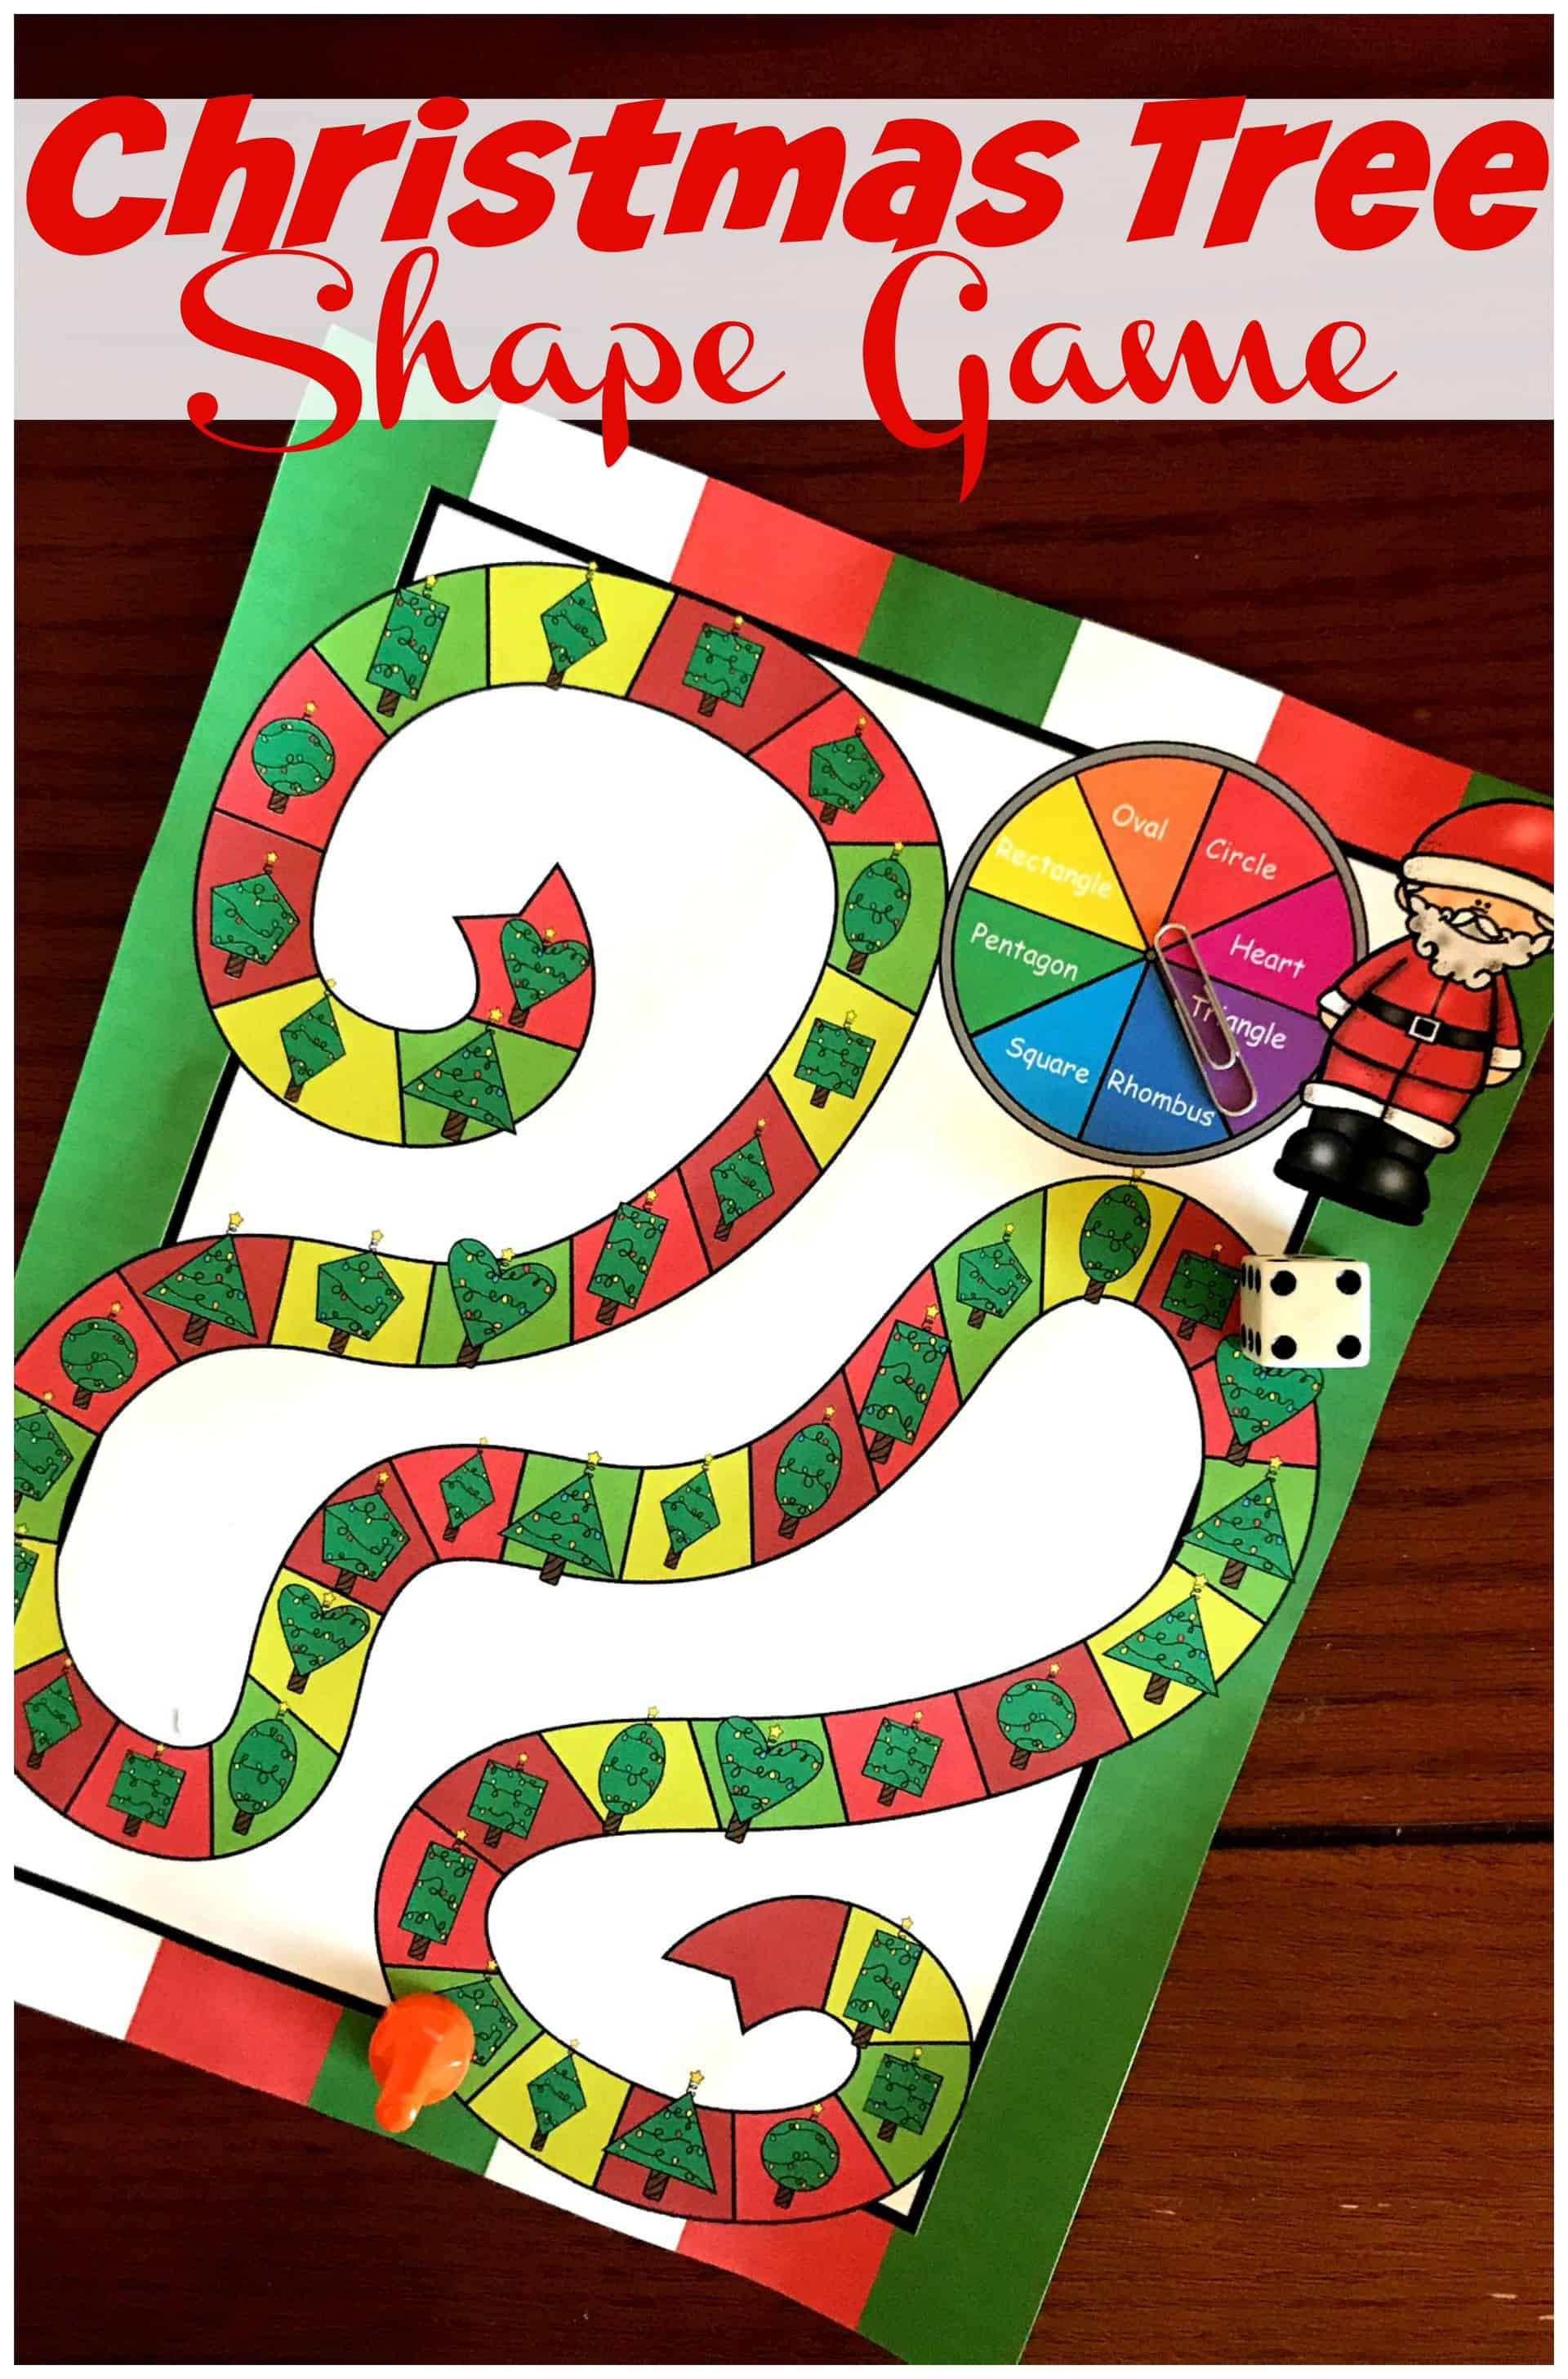 This math shape game lets children have fun practicing the names of shapes and recognizingthem. This game has shapes like a rhombus, rectangle, parallelogram, hexagon, etc.